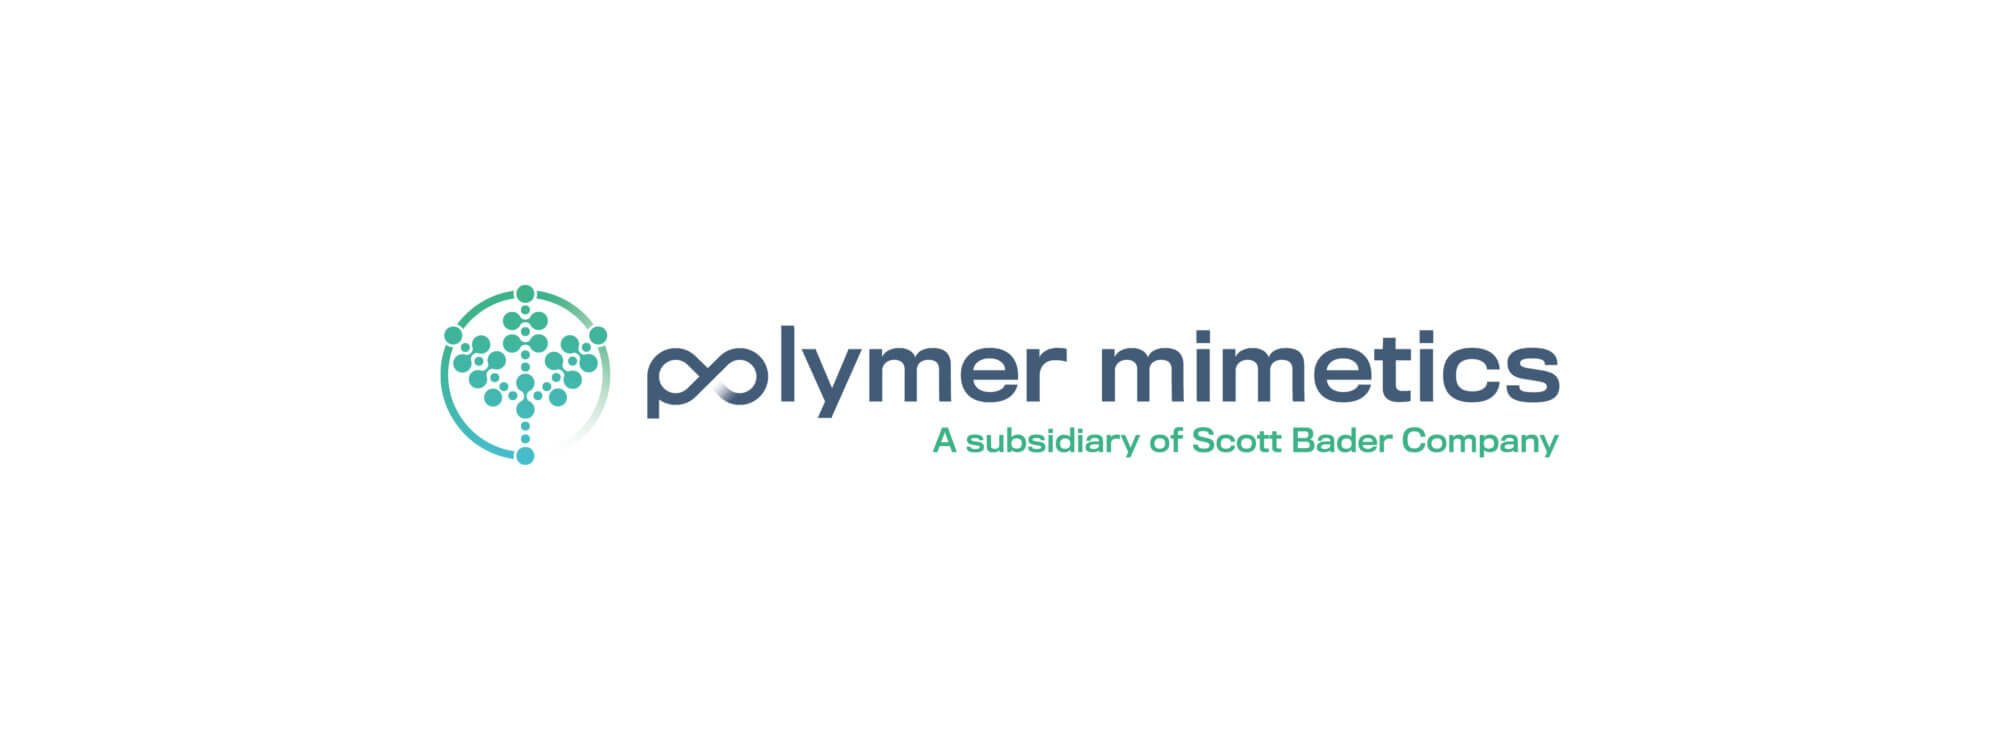 Polymer Mimetics update us on their progress one year on